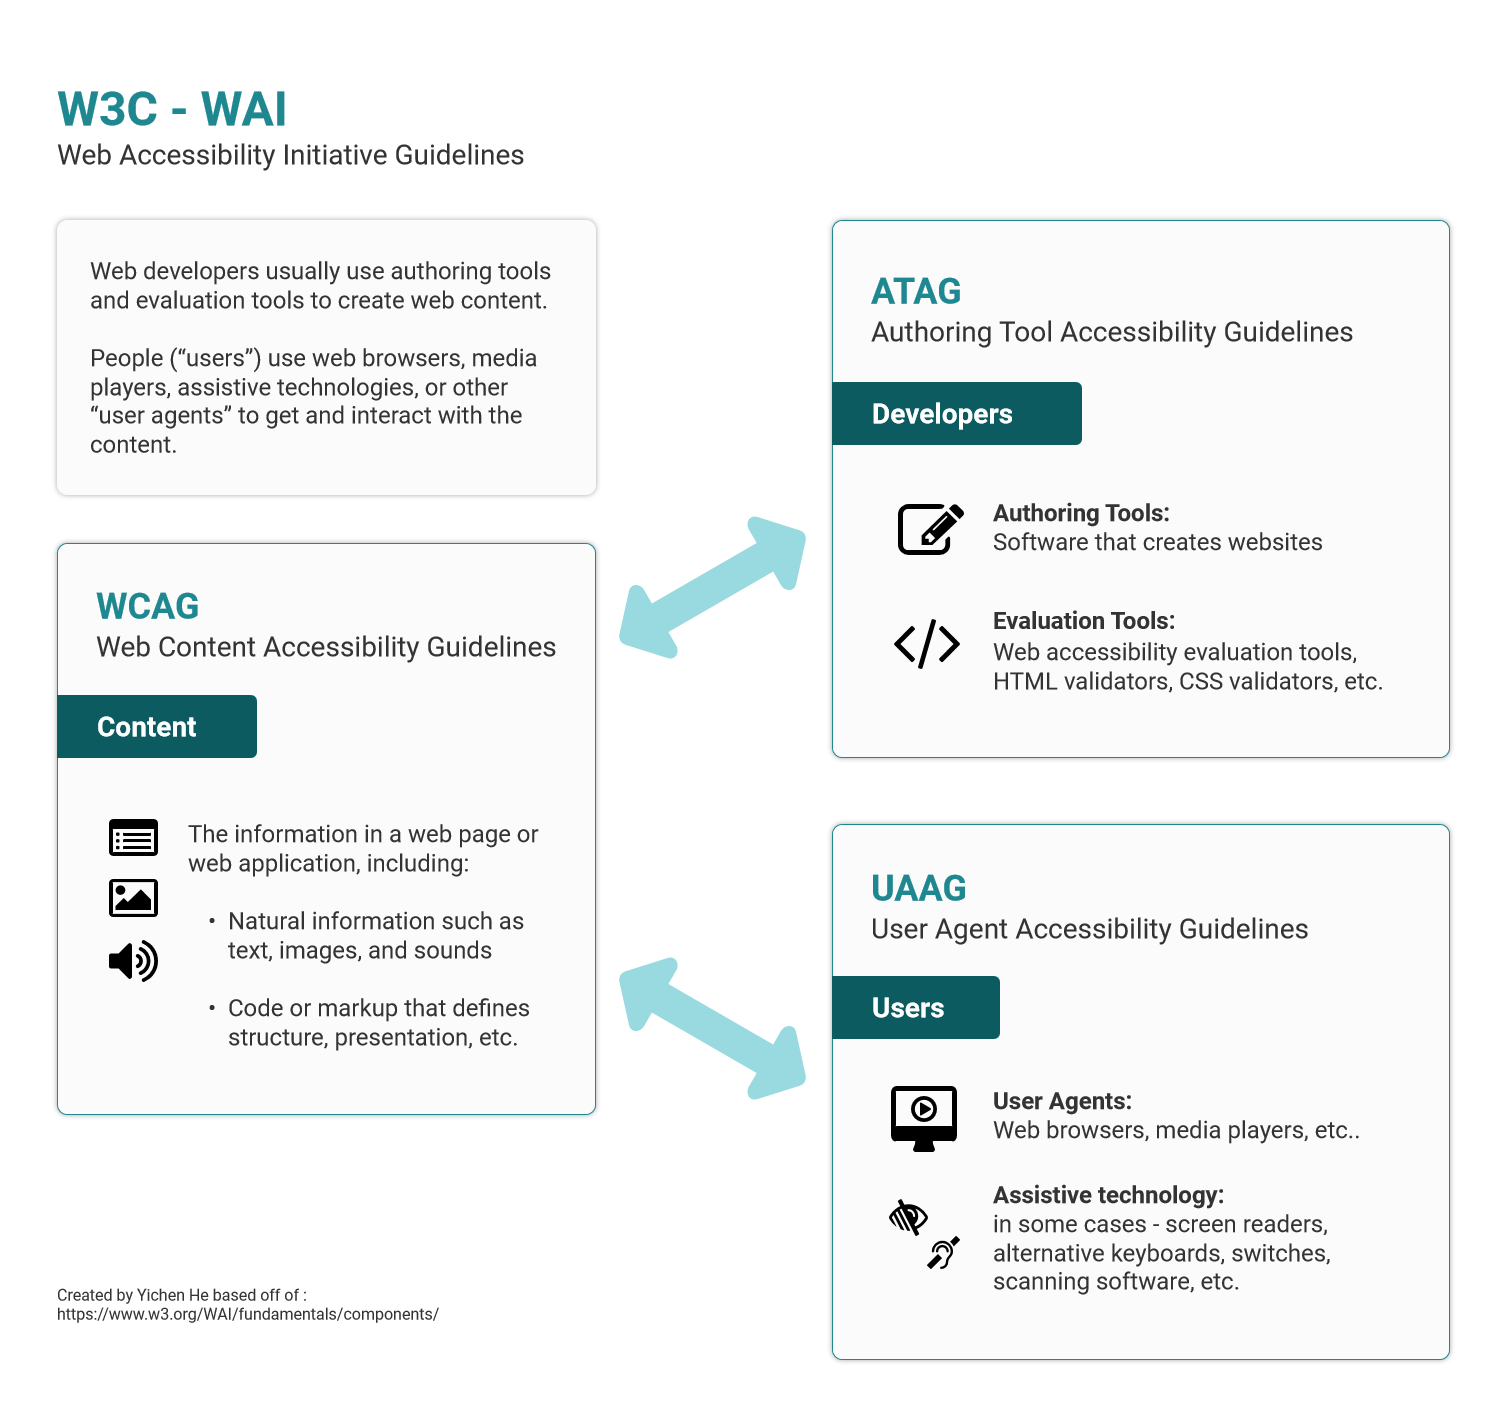 W3C—WAI illustration of the relationship between WCAG, ATAG and UAAG